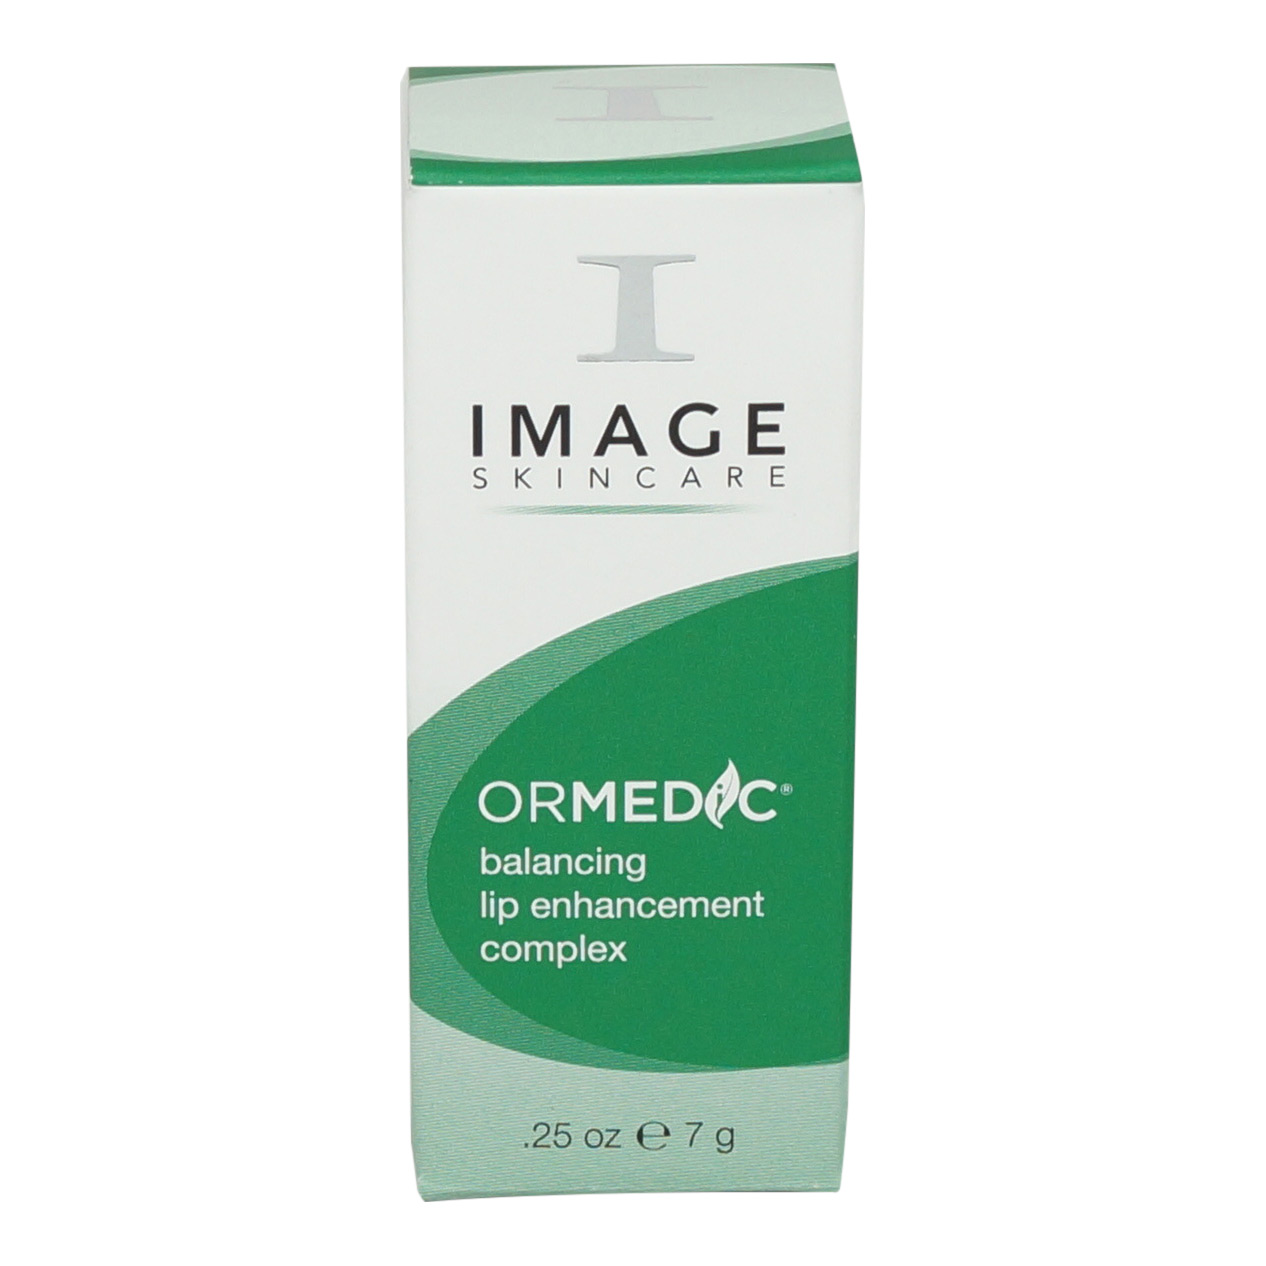 Ormedic Balance Conditioning Lip Balm by Image Skincare #3